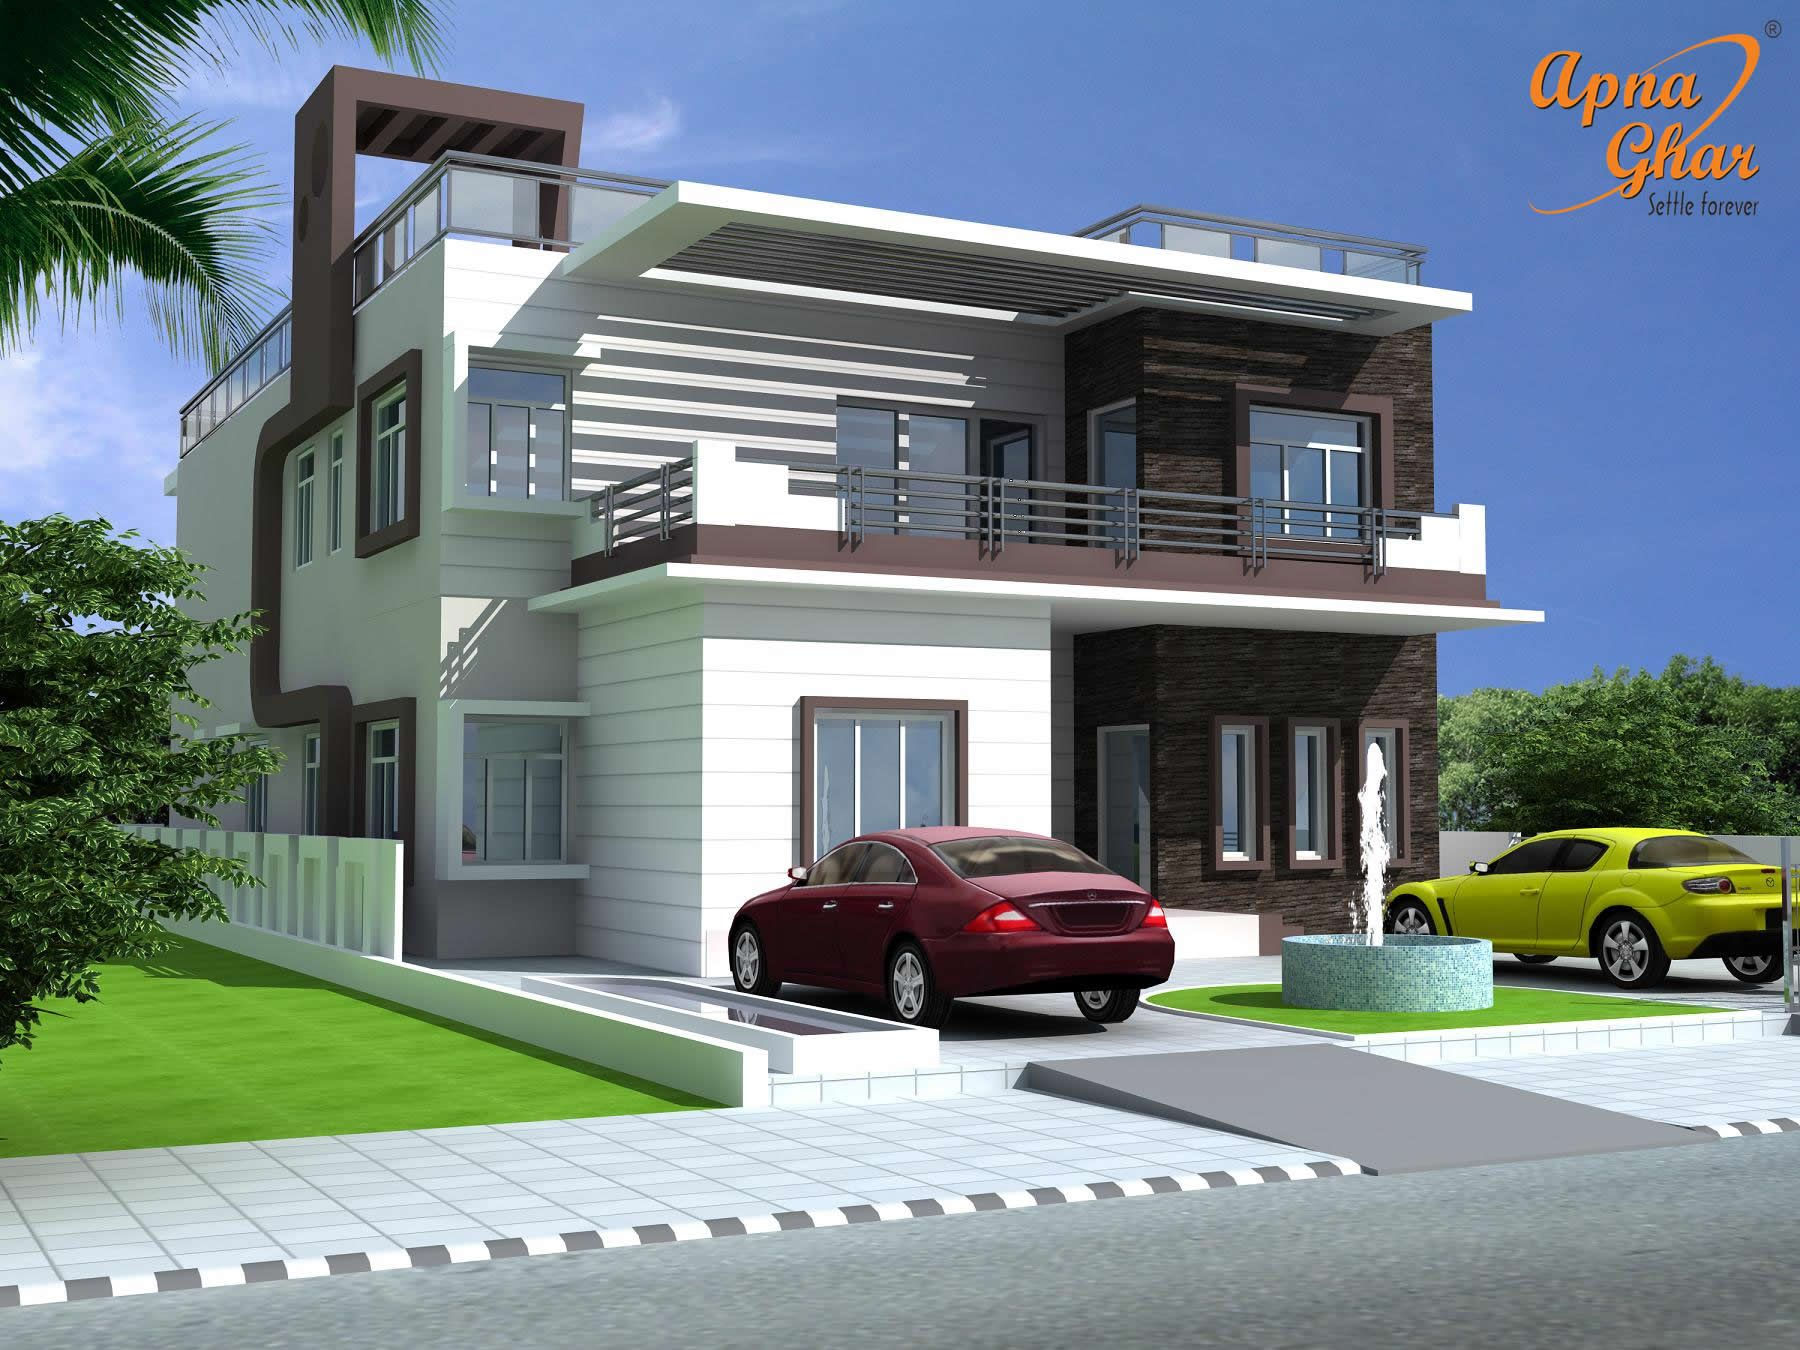 6 bedrooms duplex house design in 390m2 13m x 30m click for Duplex townhouse designs